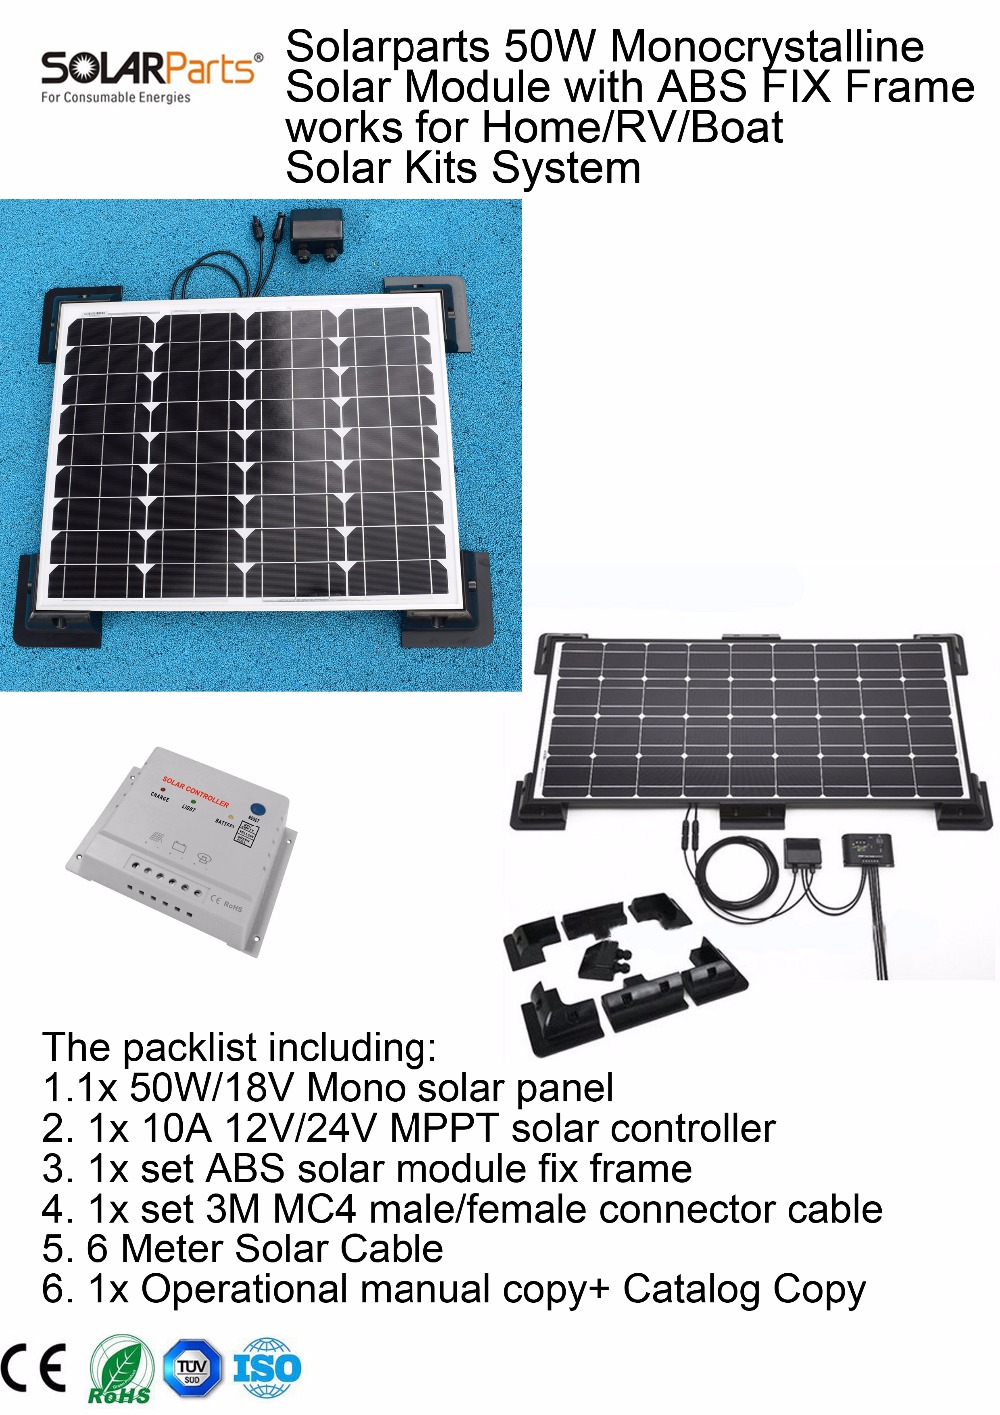 Solarparts 1x 50w monocrystalline solar module by abs fix for Affordable solar frames